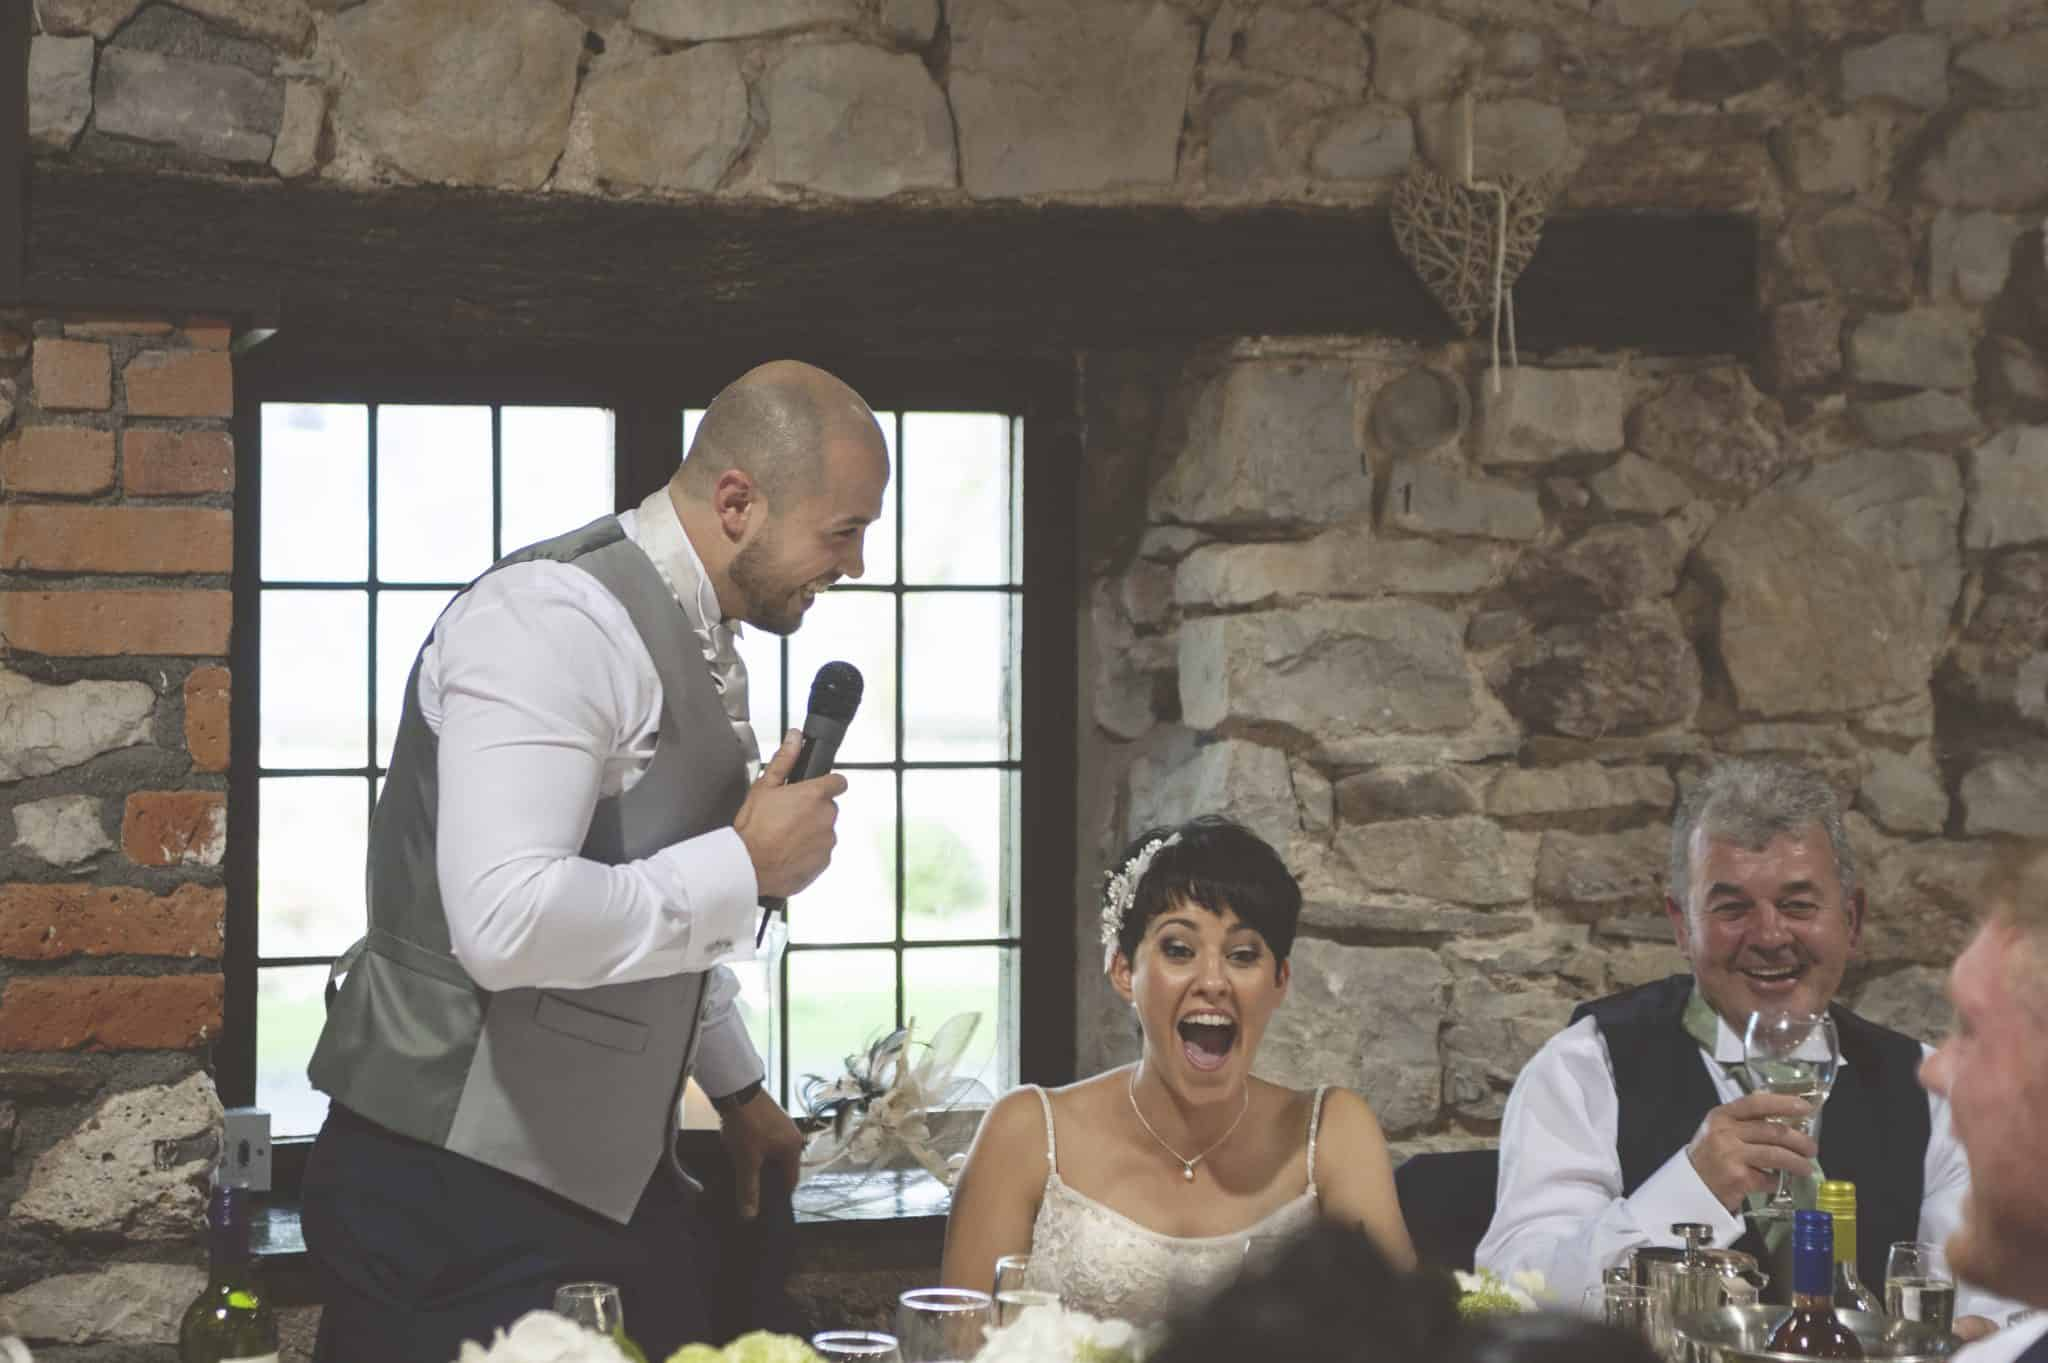 Groom giving his speech and bride laughing